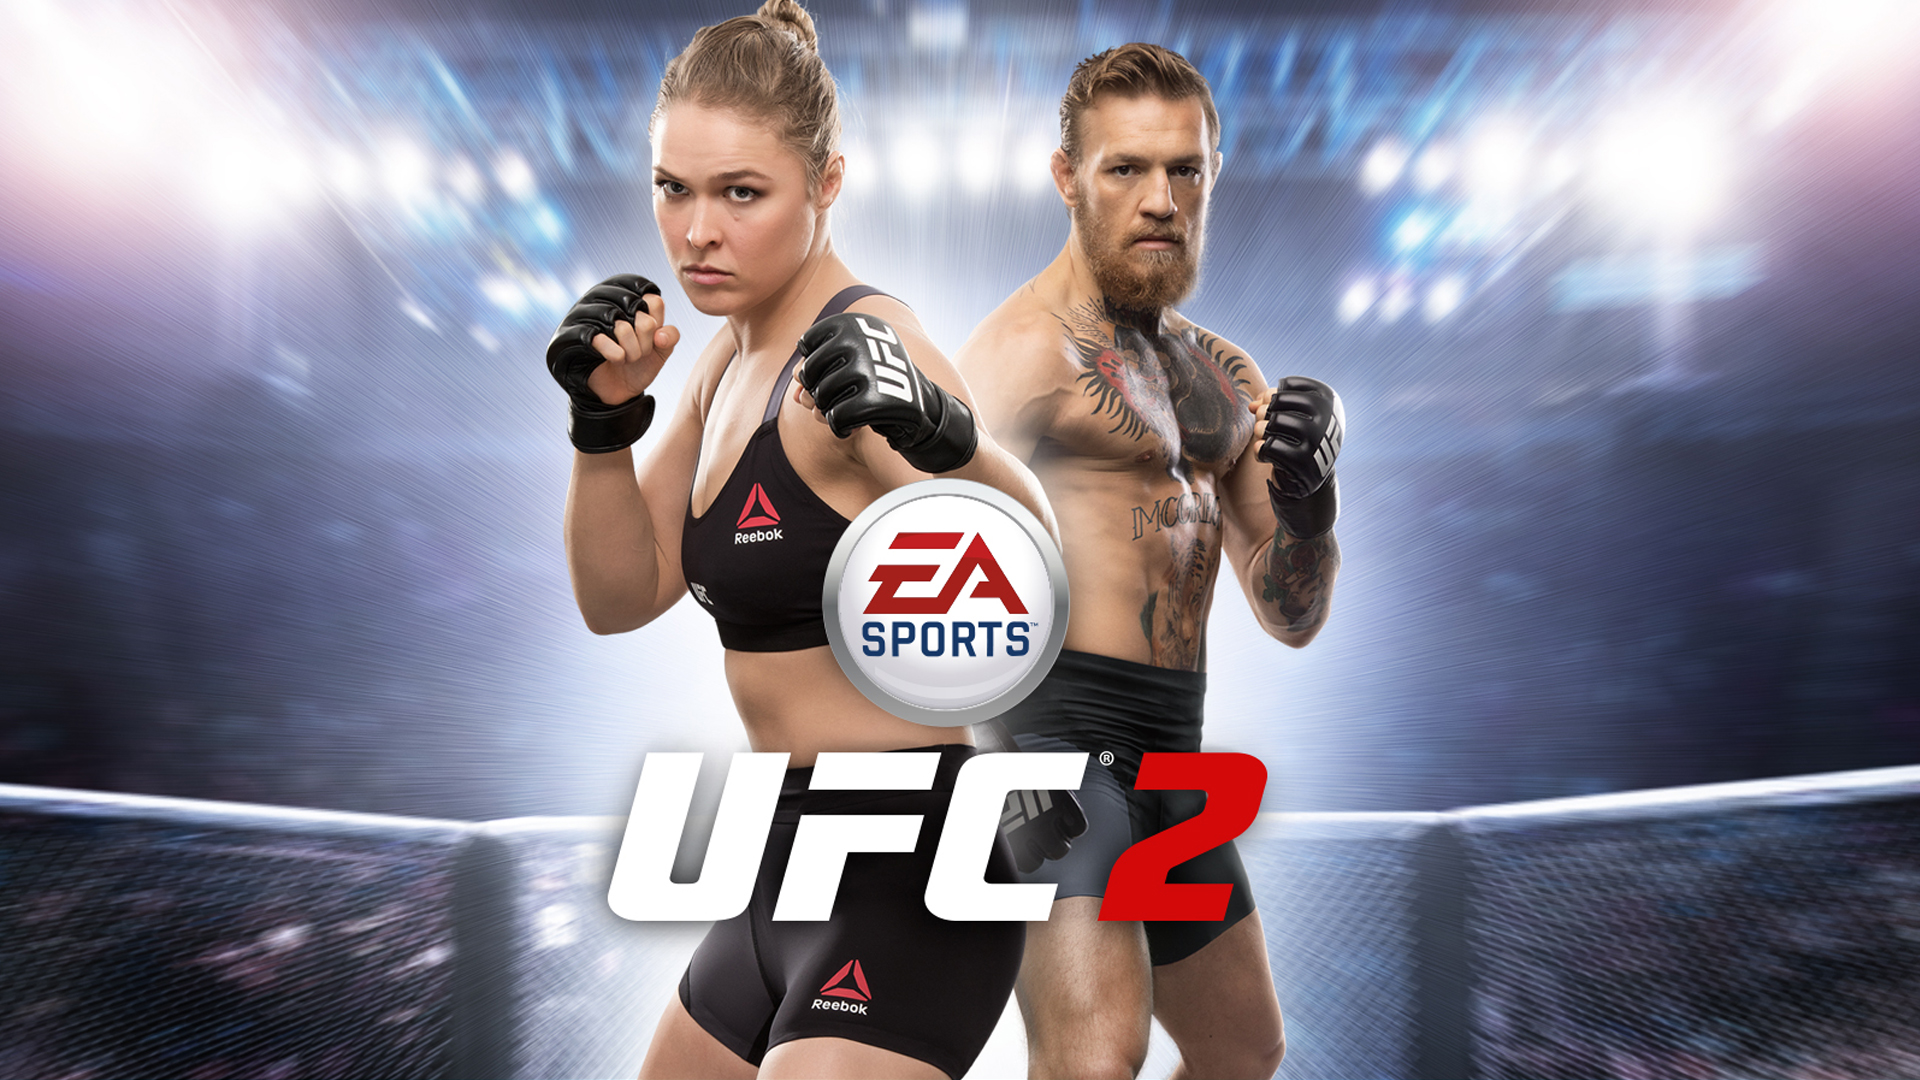 Ea sports ufc 2 hd wallpapers full hd pictures - Free ufc wallpapers ...